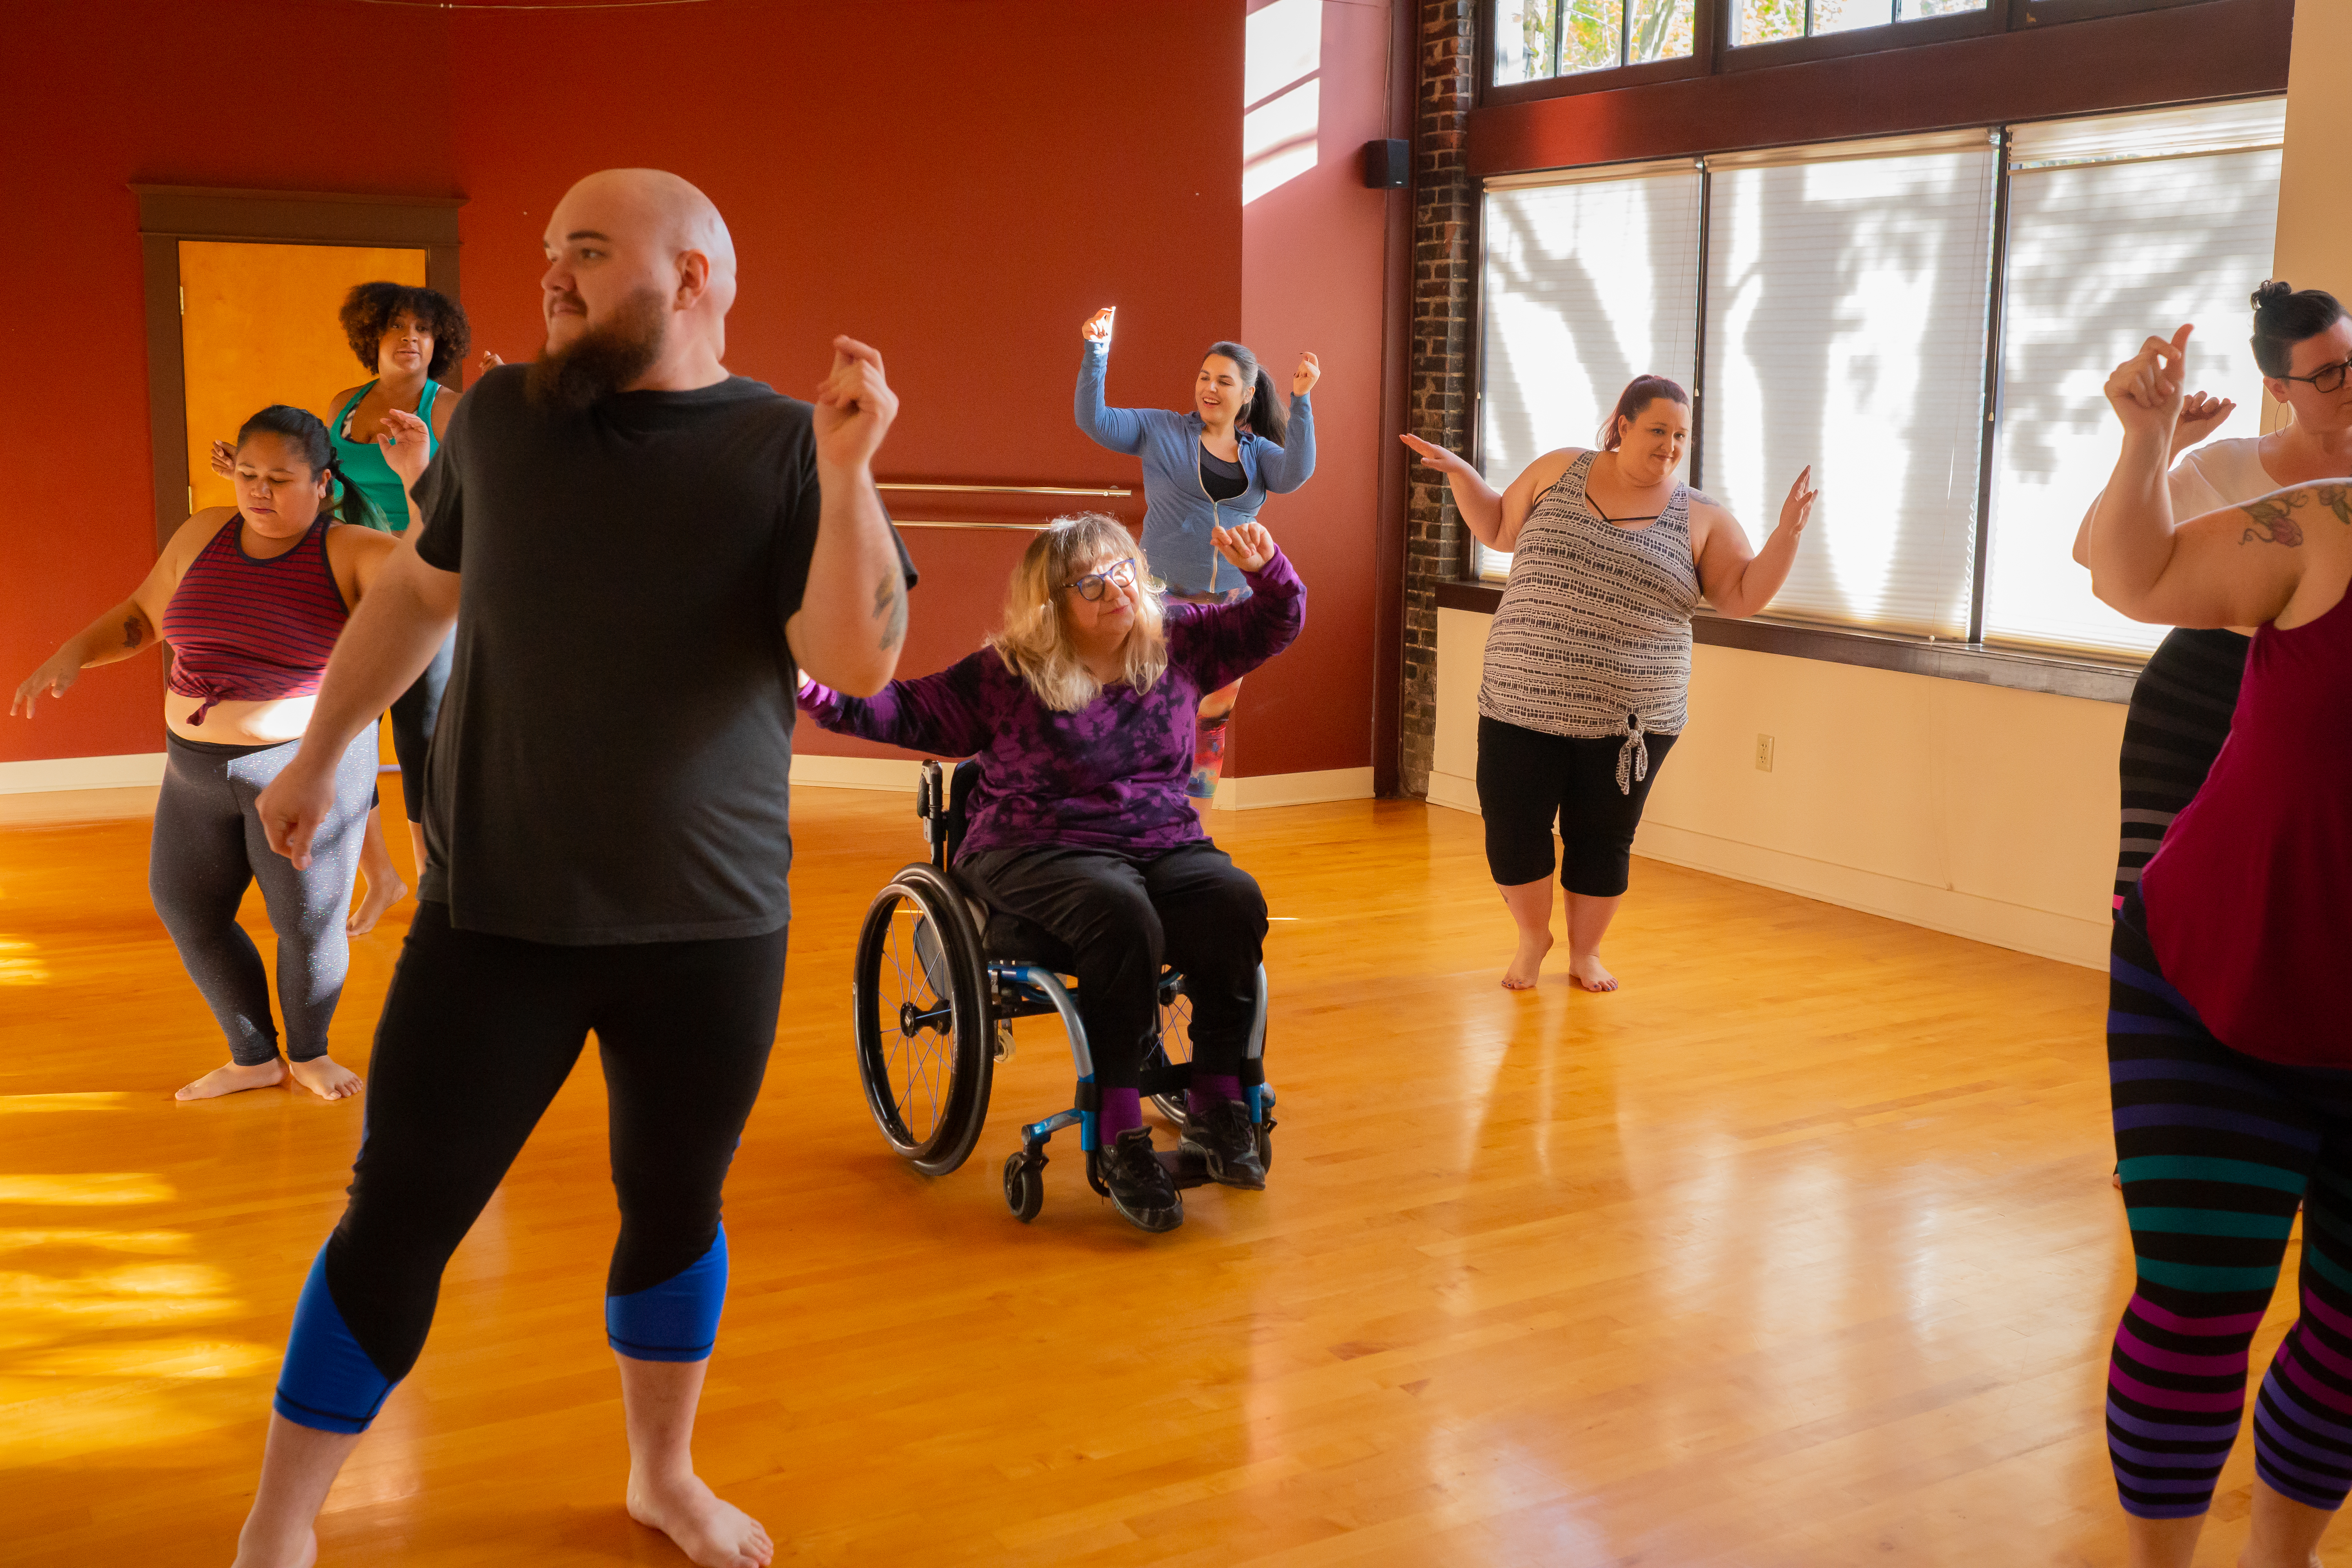 A diverse group of people dancing in an exercise studio